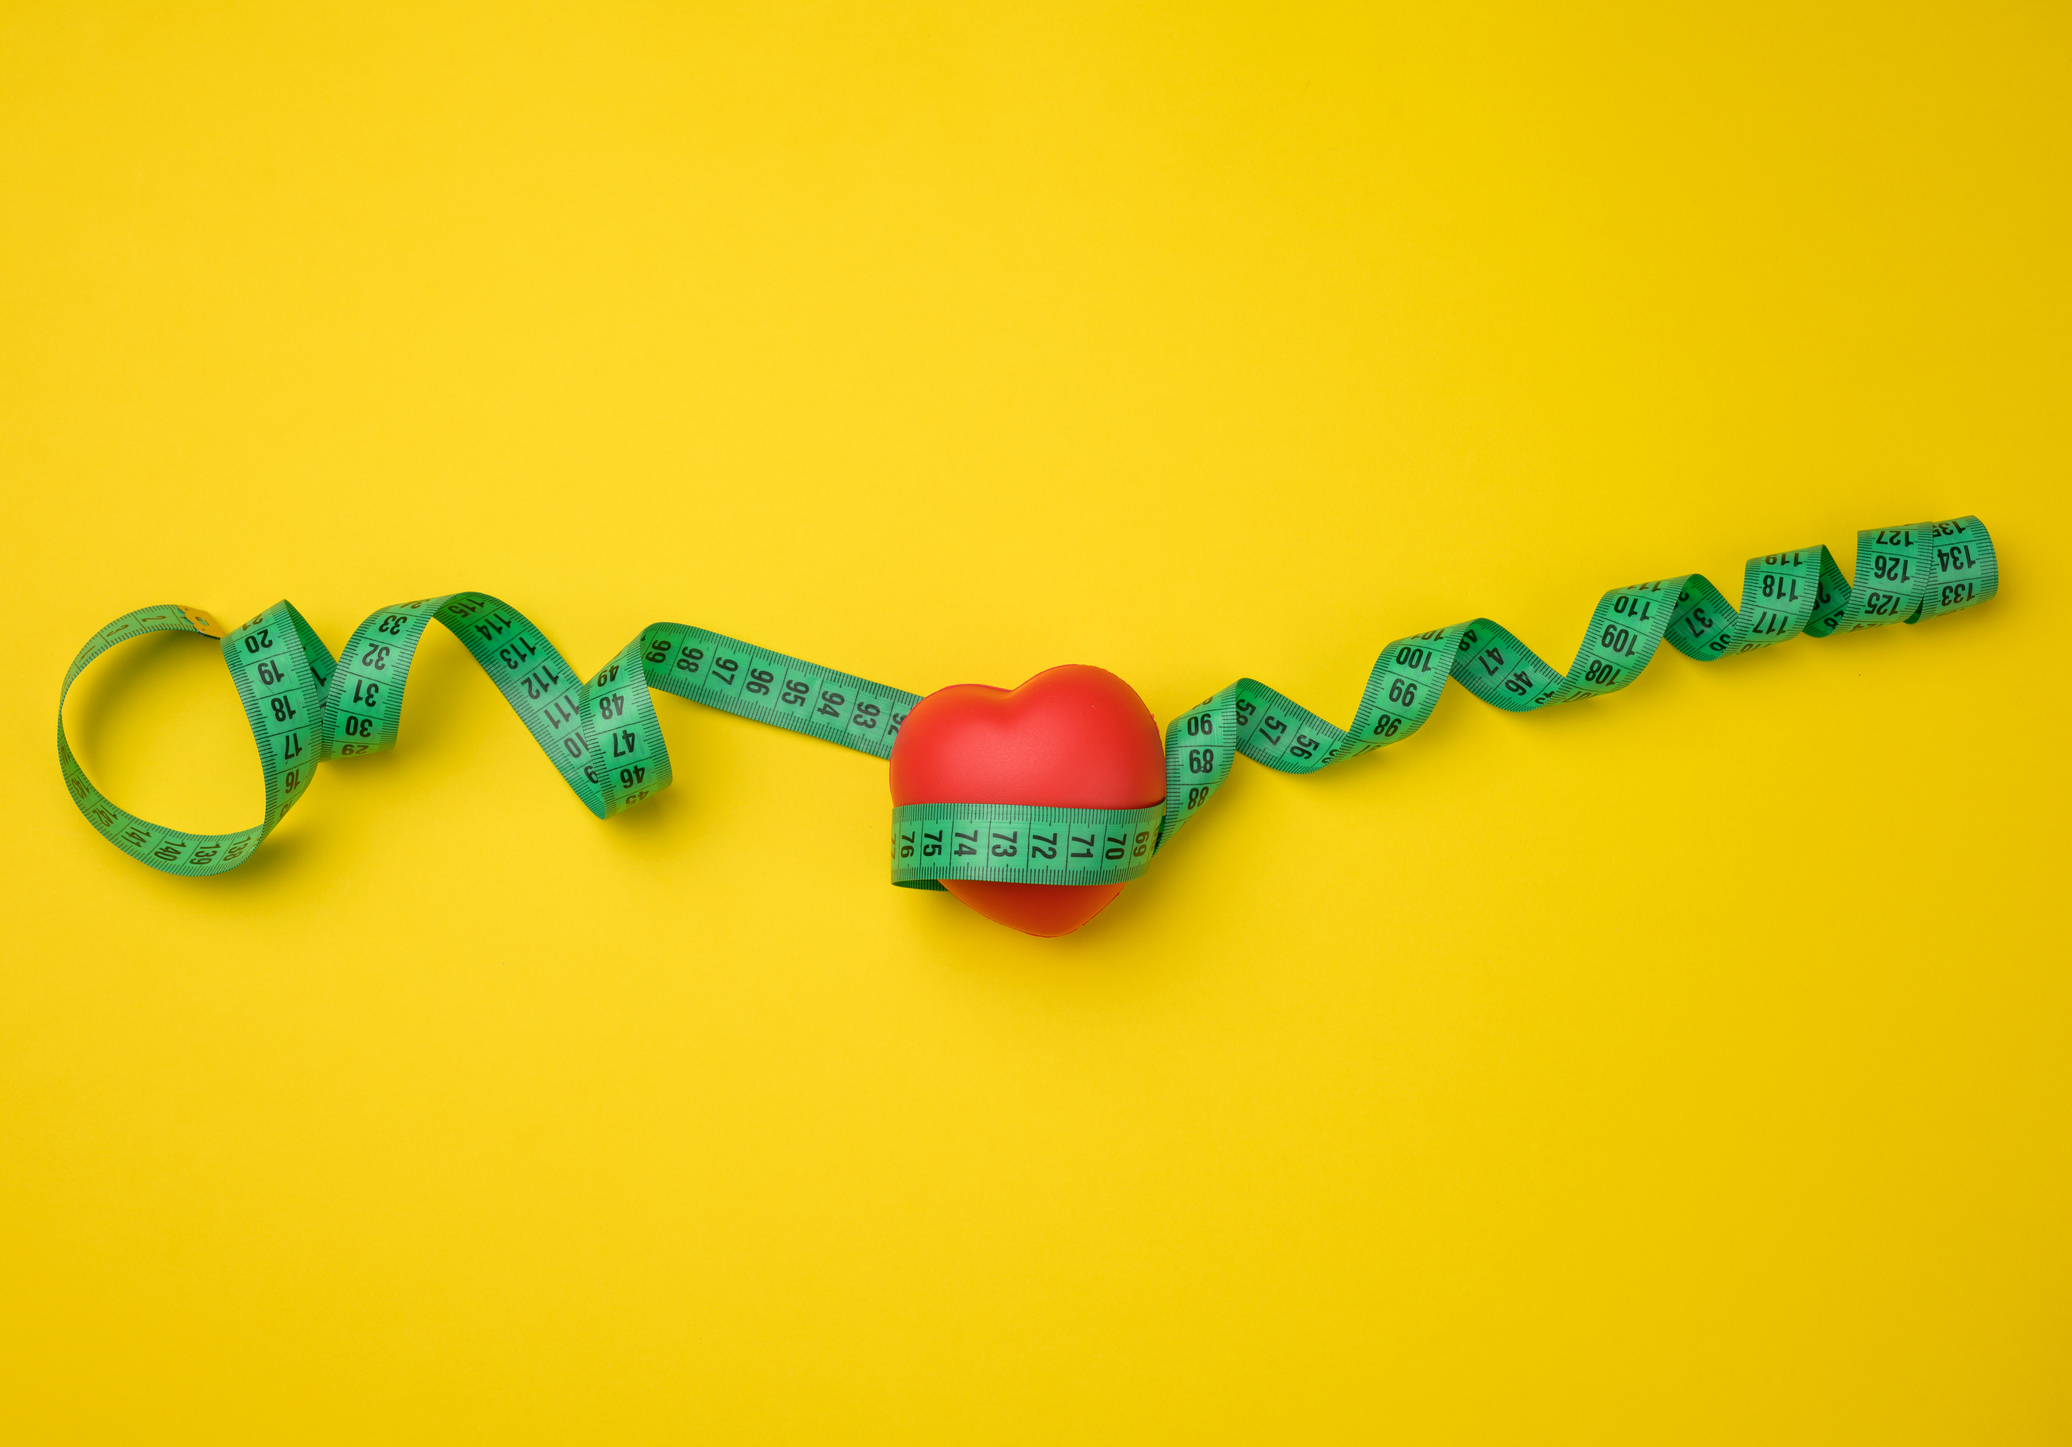 Weight or inches: Which matters most for heart health?